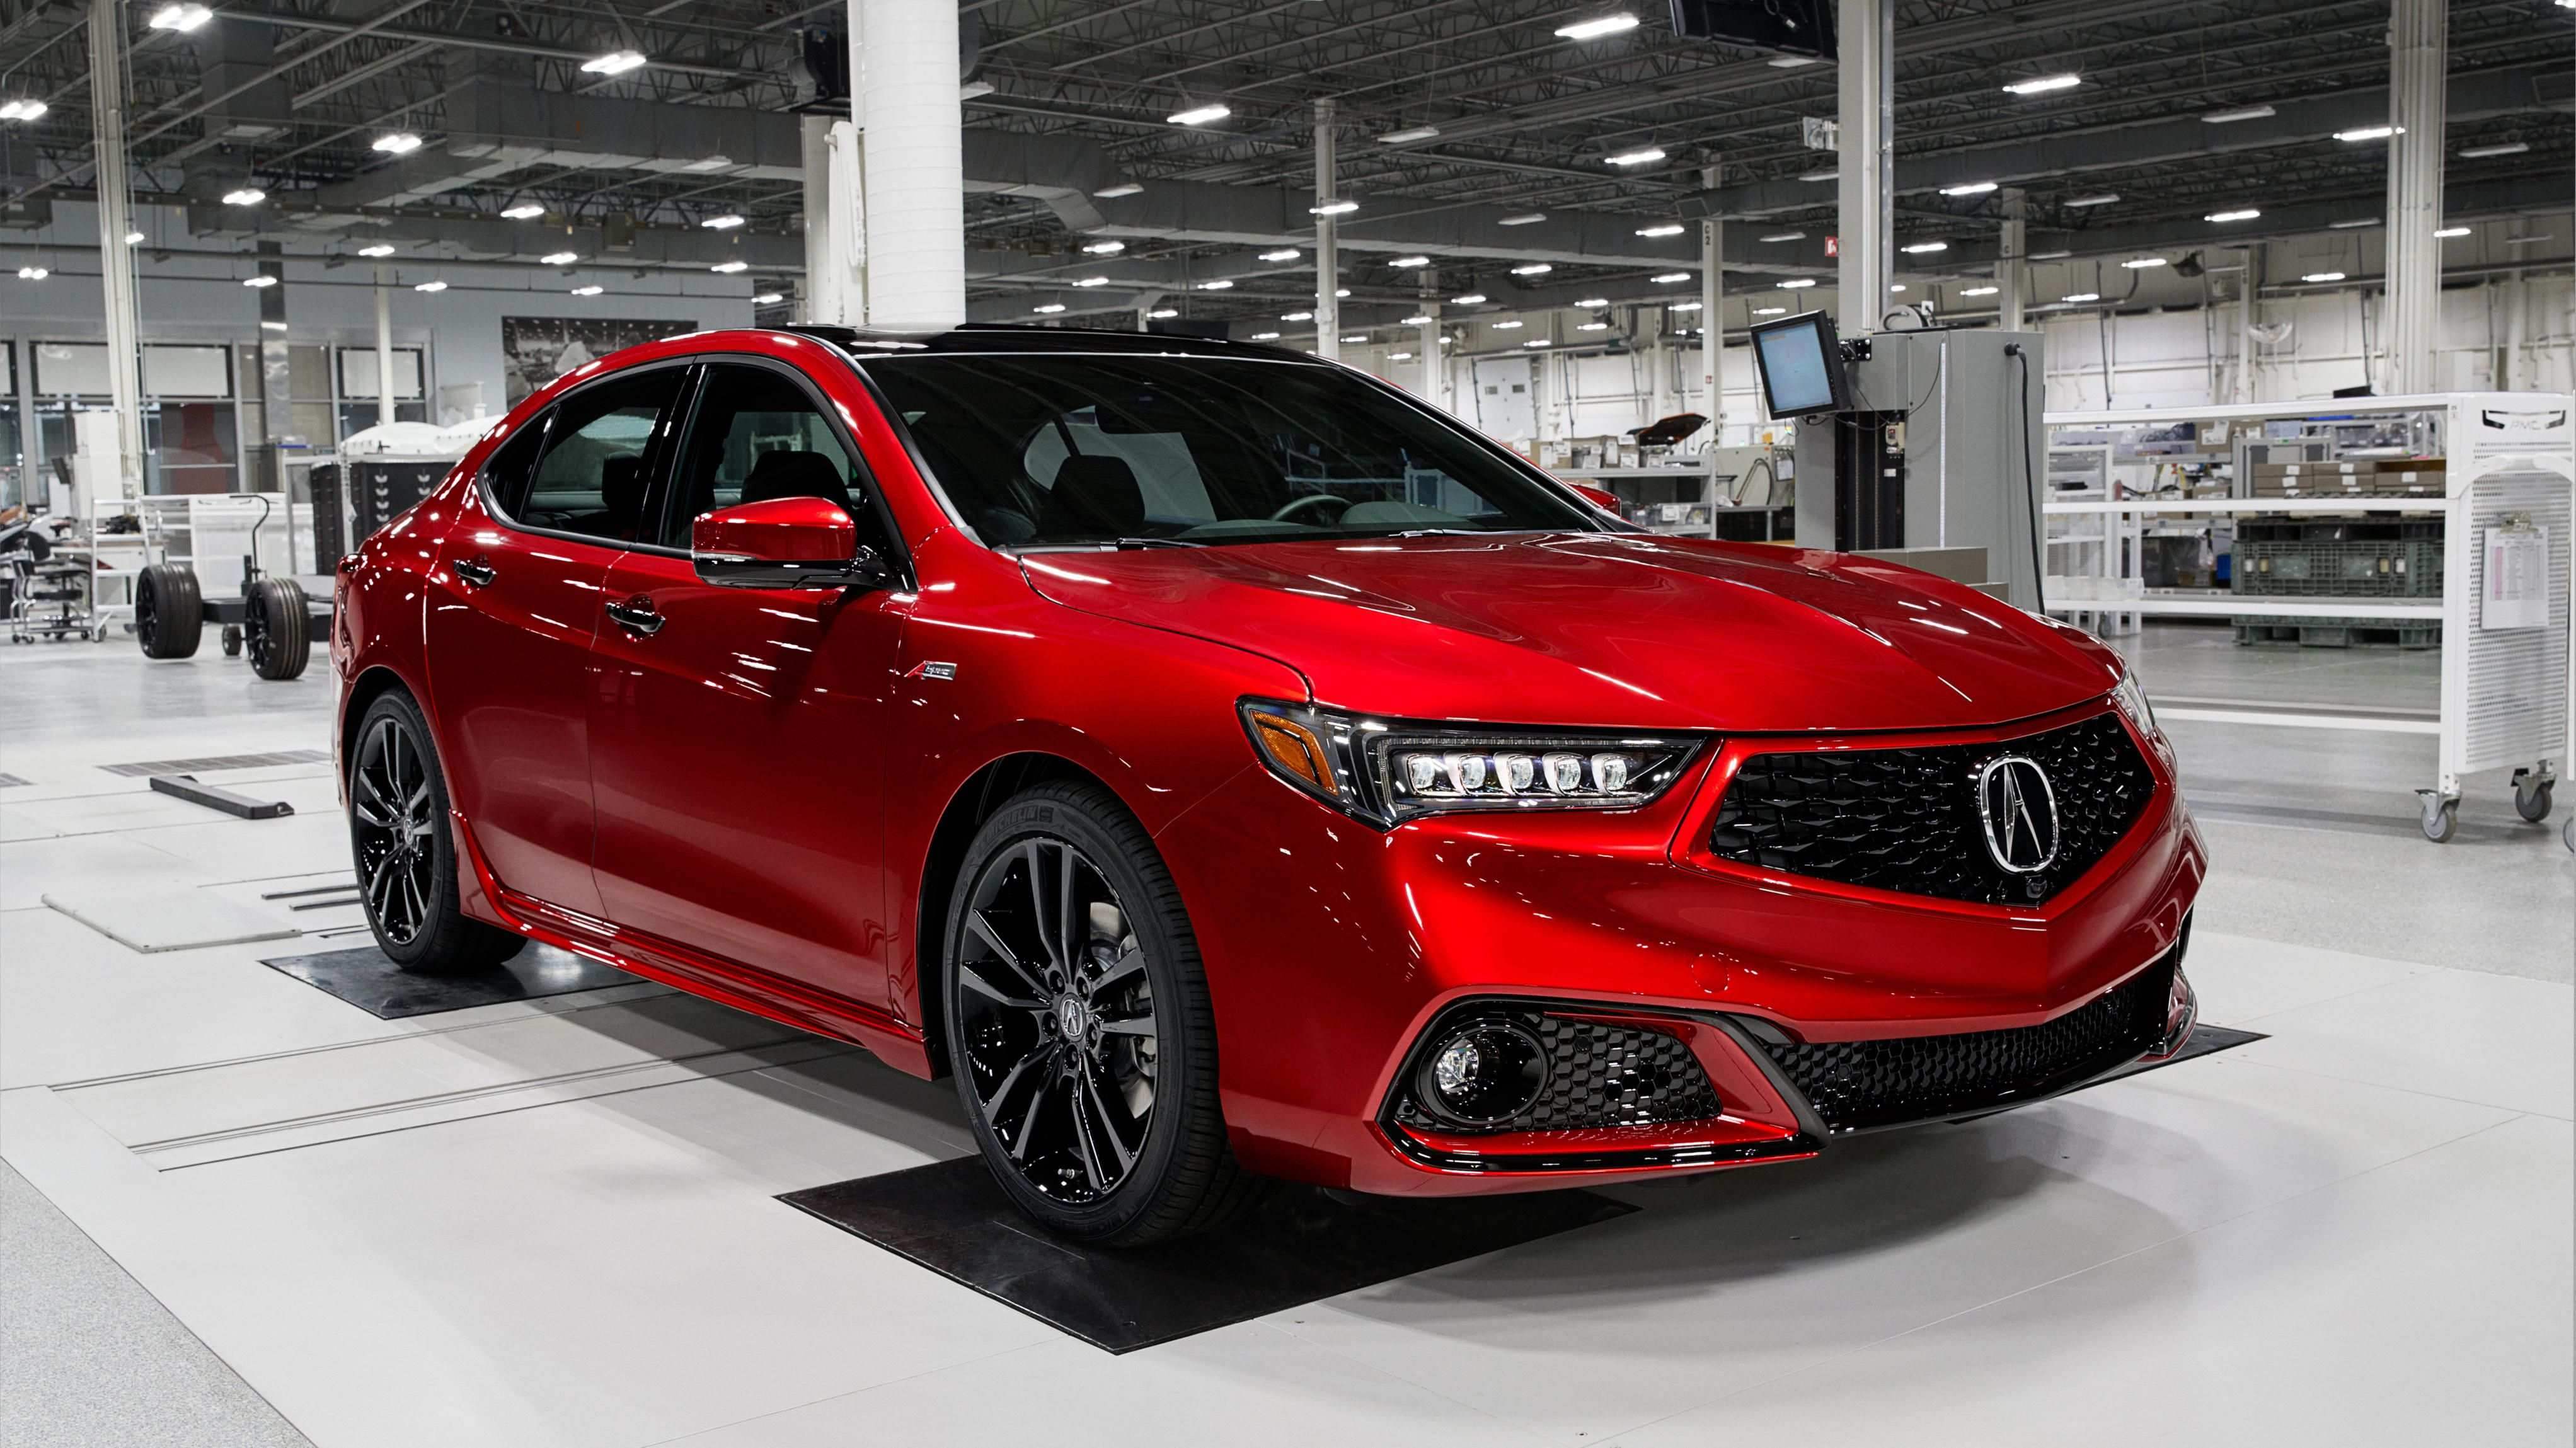 22 A When Will 2020 Acura Tlx Be Available Price And Release Date